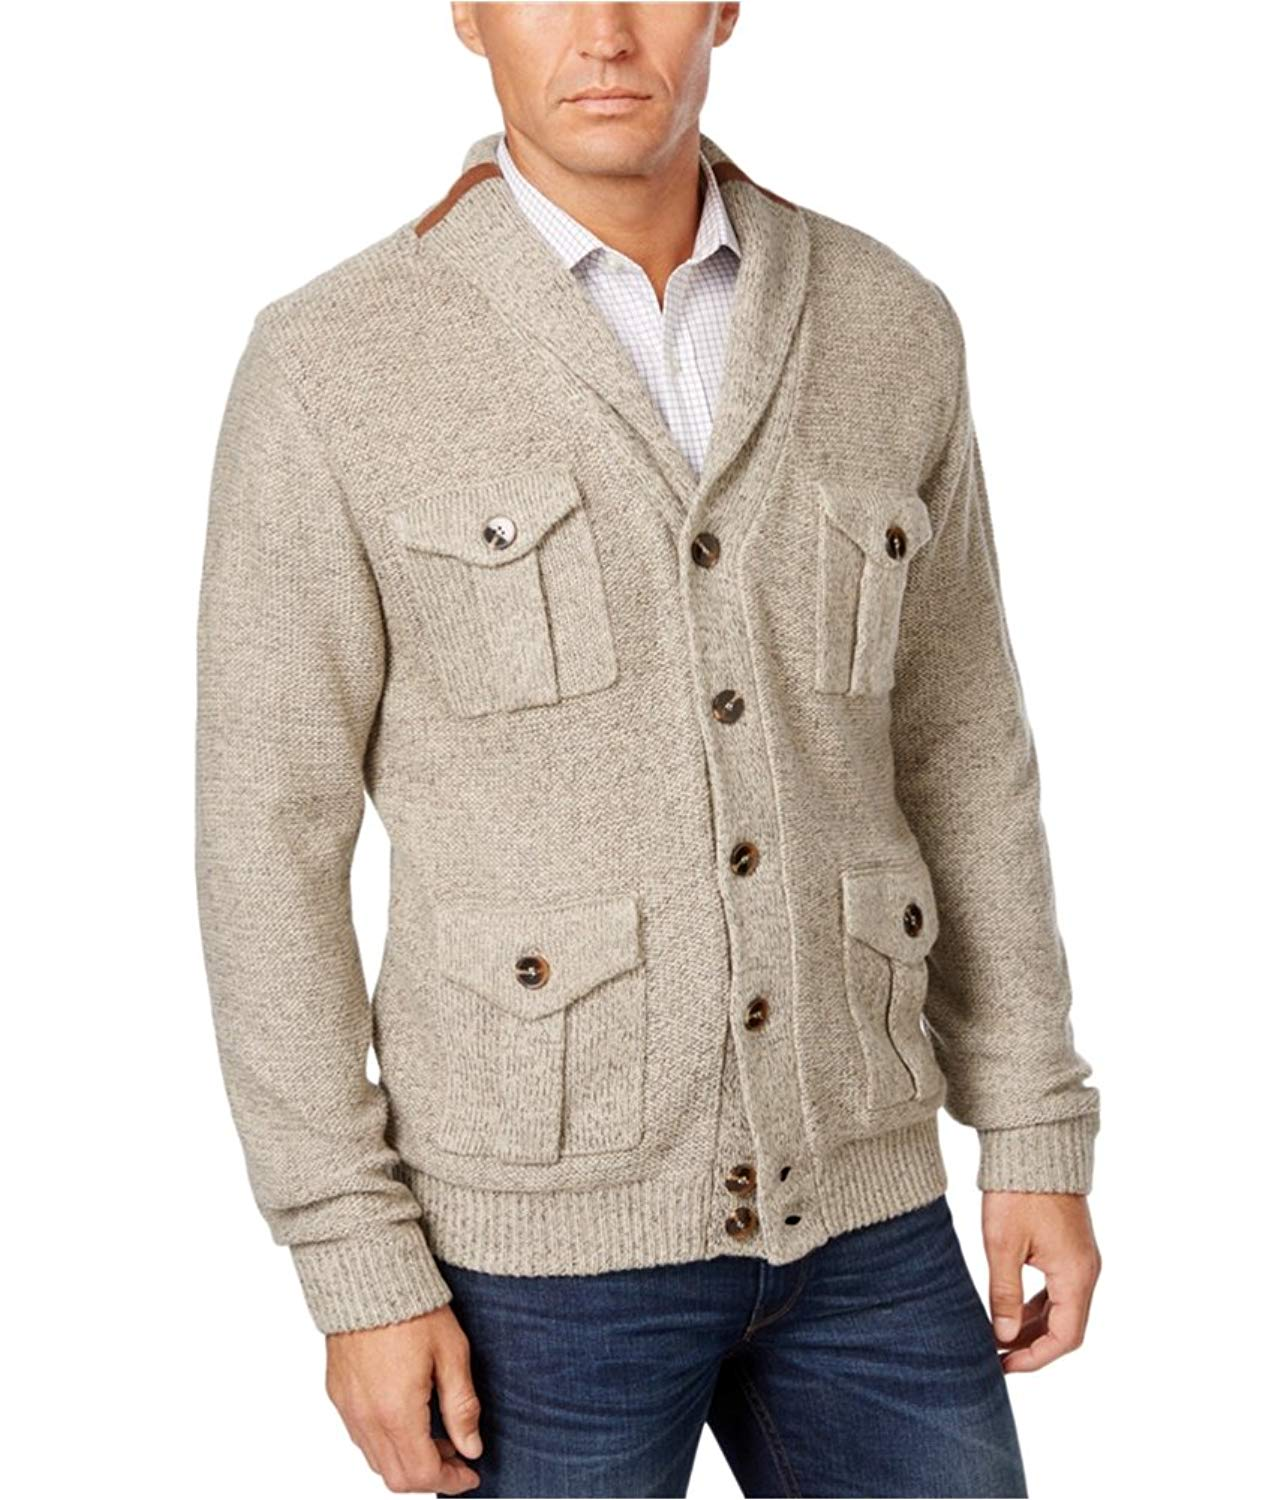 ONTBYB Mens Casual Slim Open Front Horns Button Hooded Long Cardigan Sweater